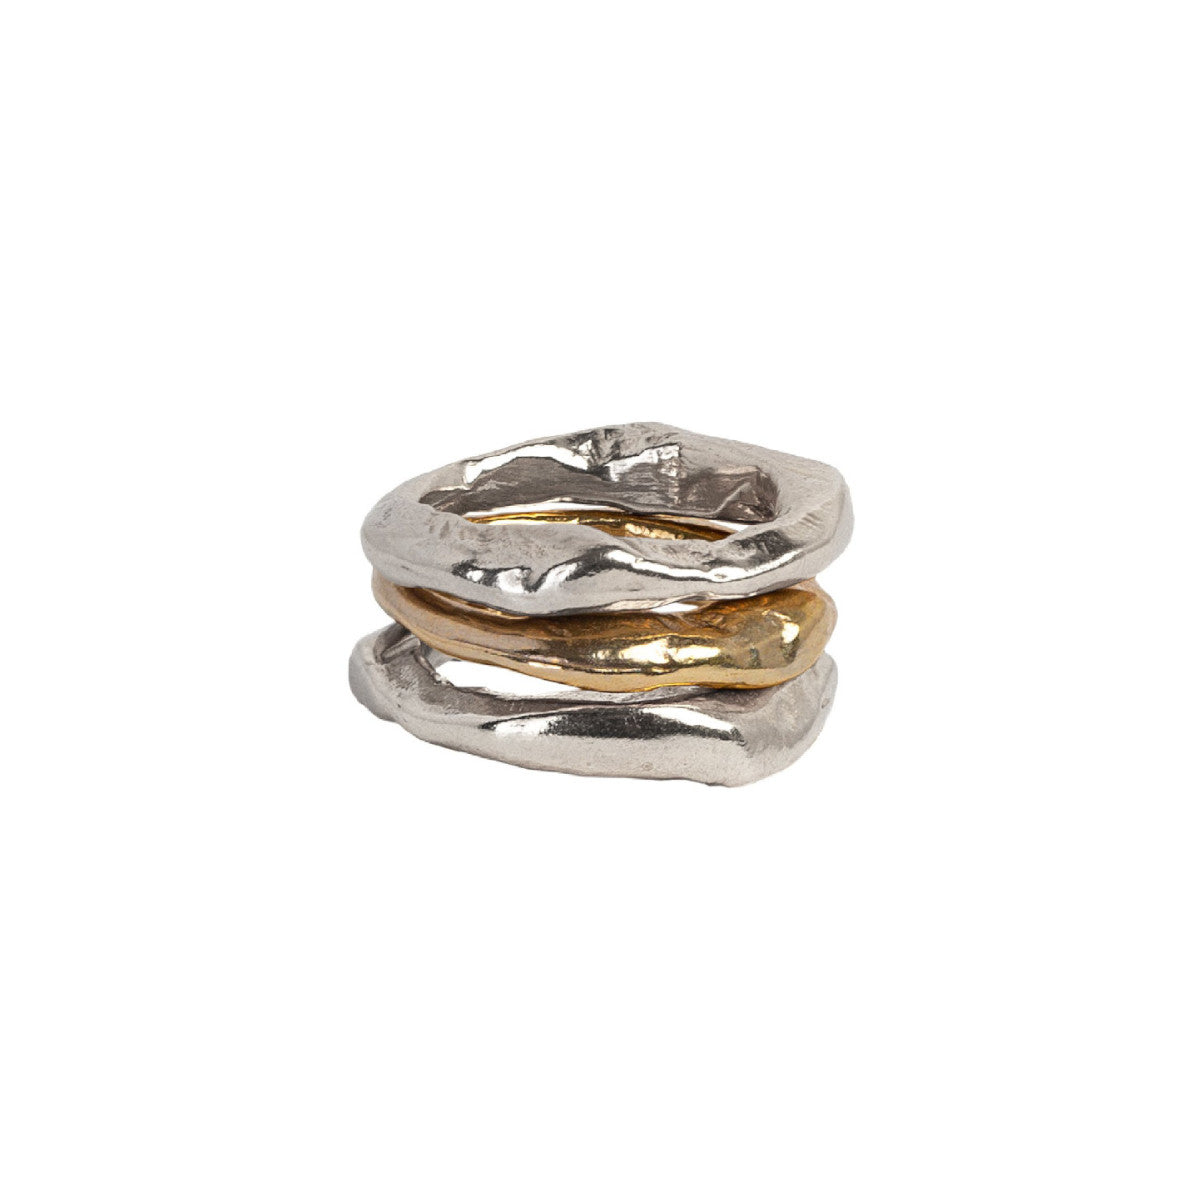 Mixed Metals Stone Stacking Rings Combination 2